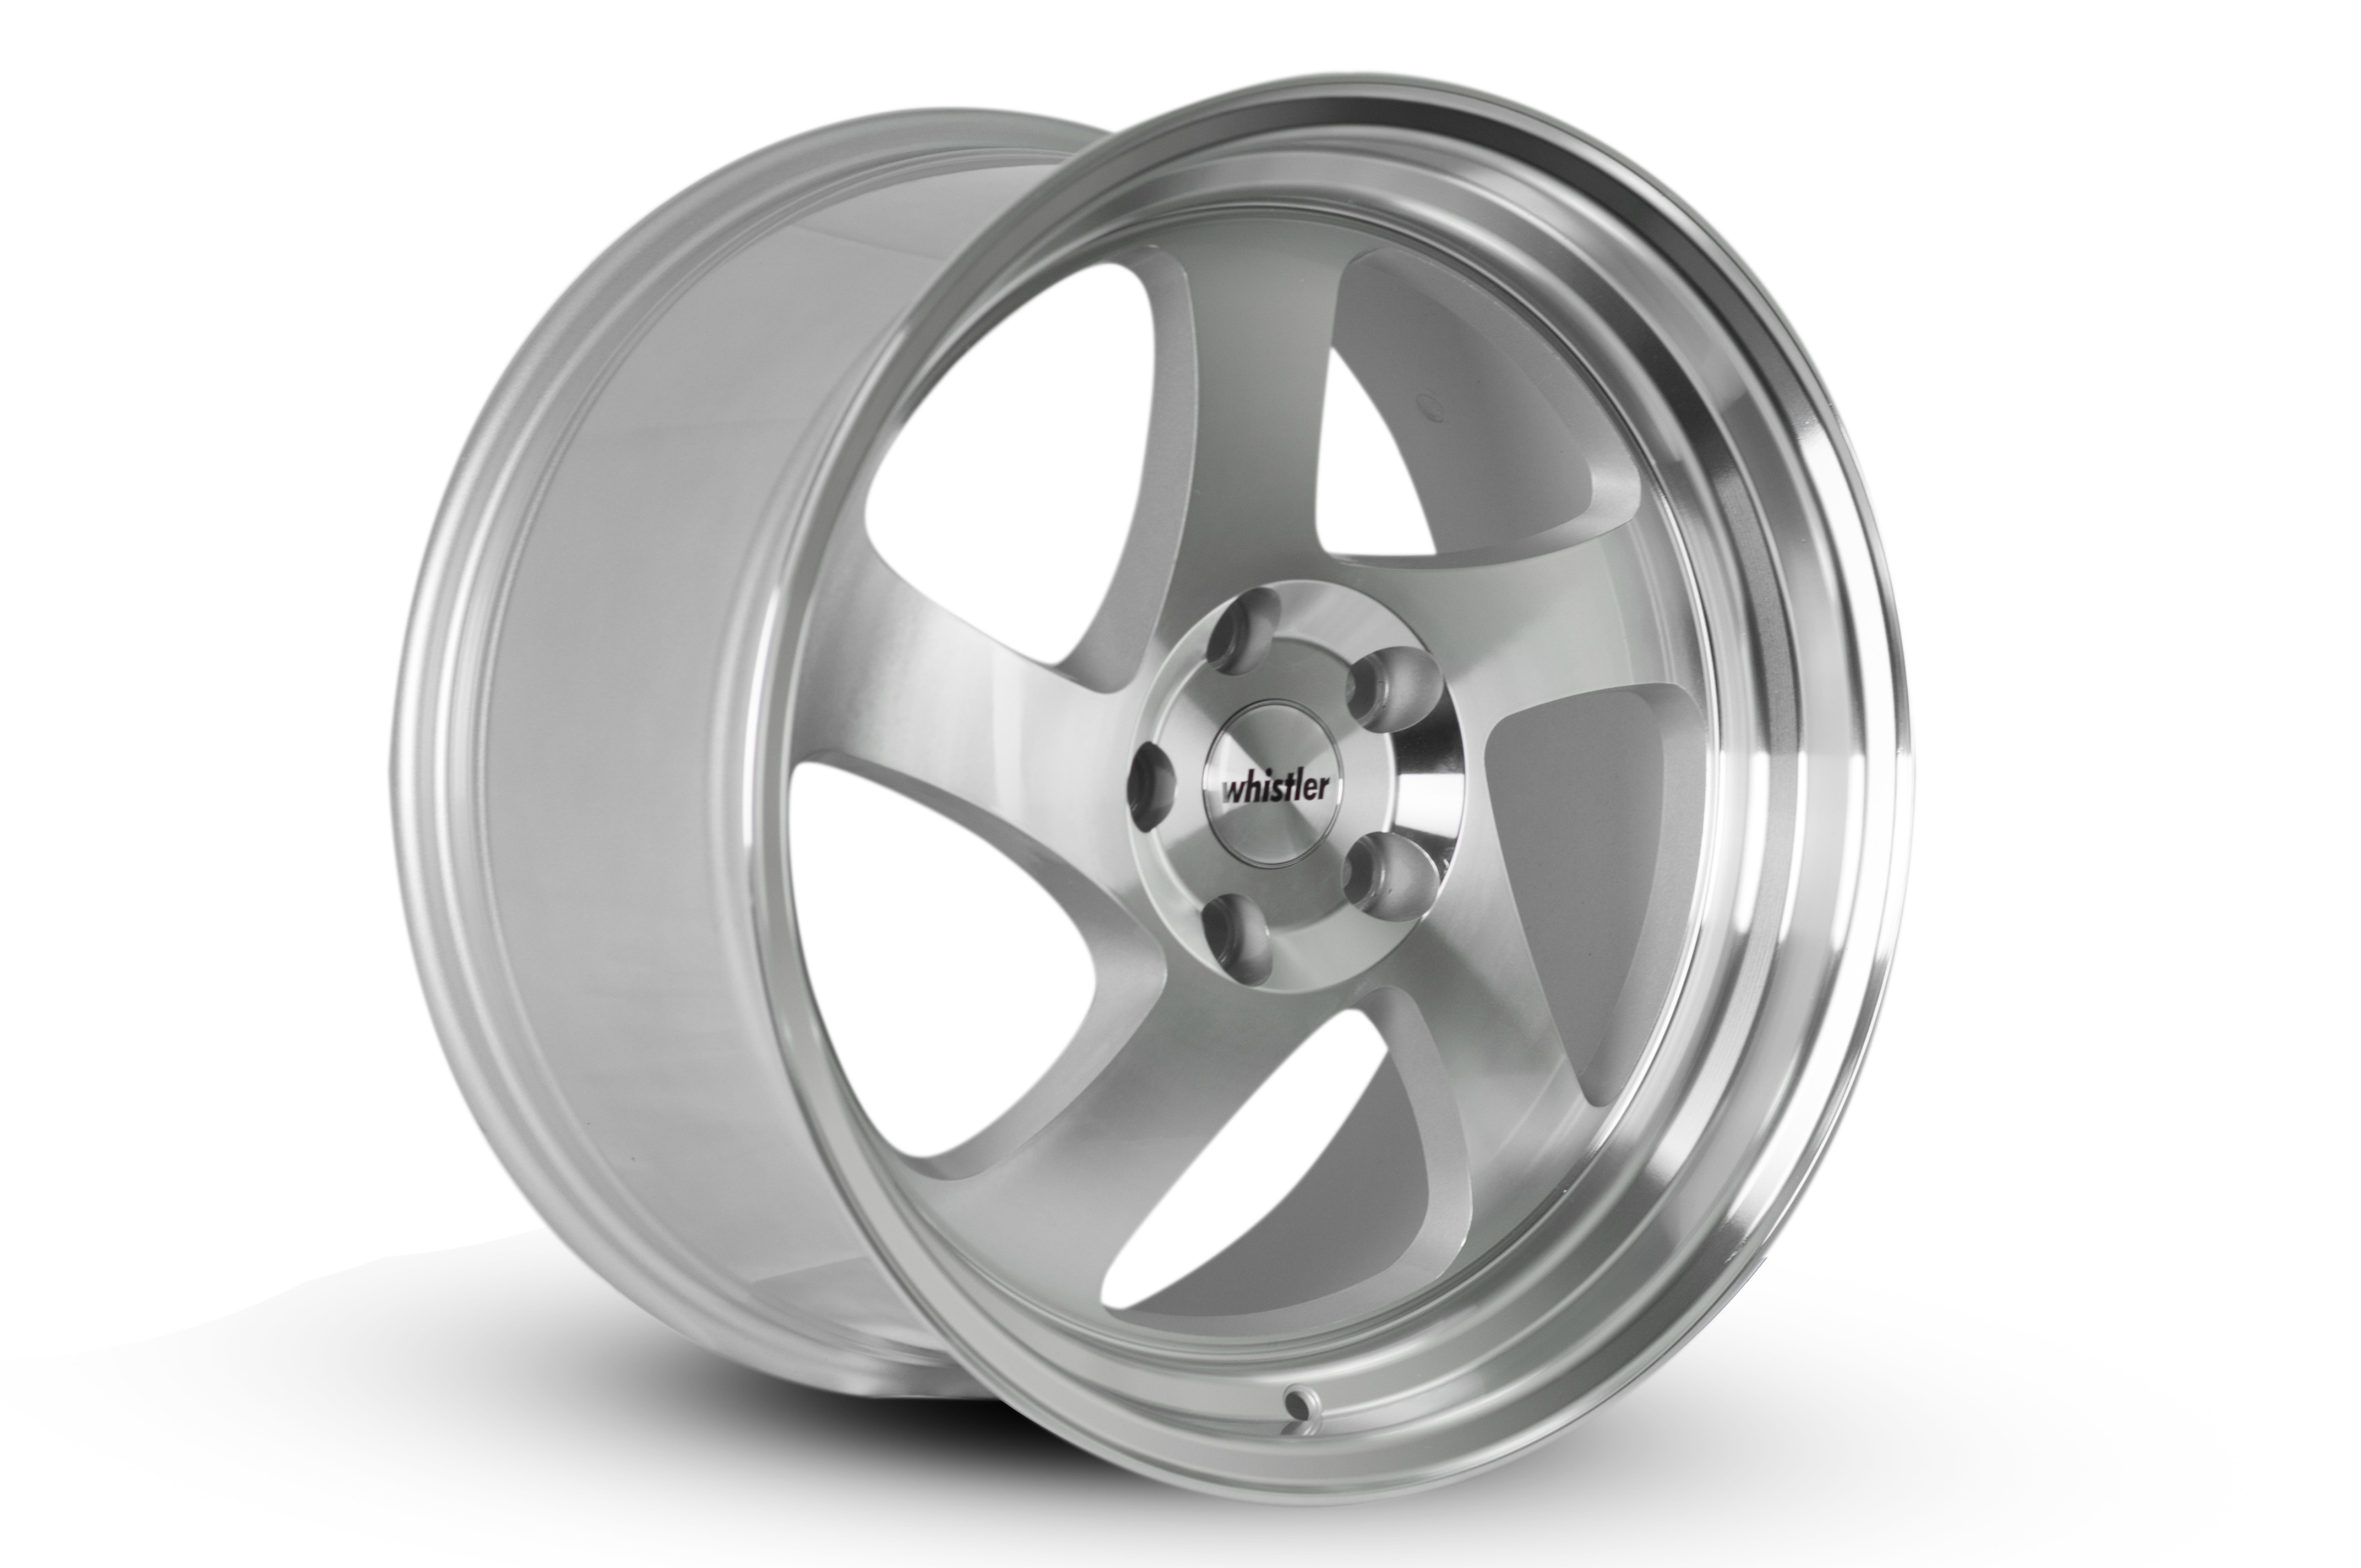 Whistler Wheels 17x9 KR1 Silver with Machined Face: +25mm